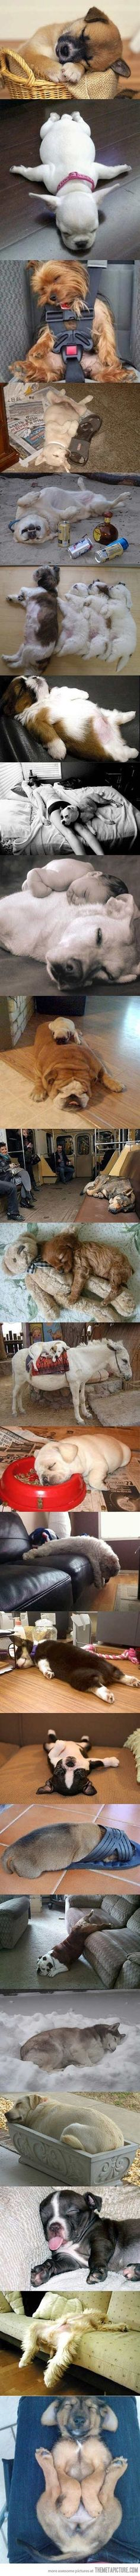 Sleepy doggies. So stinkin cute! - Click image to find more Humor Pinterest pins